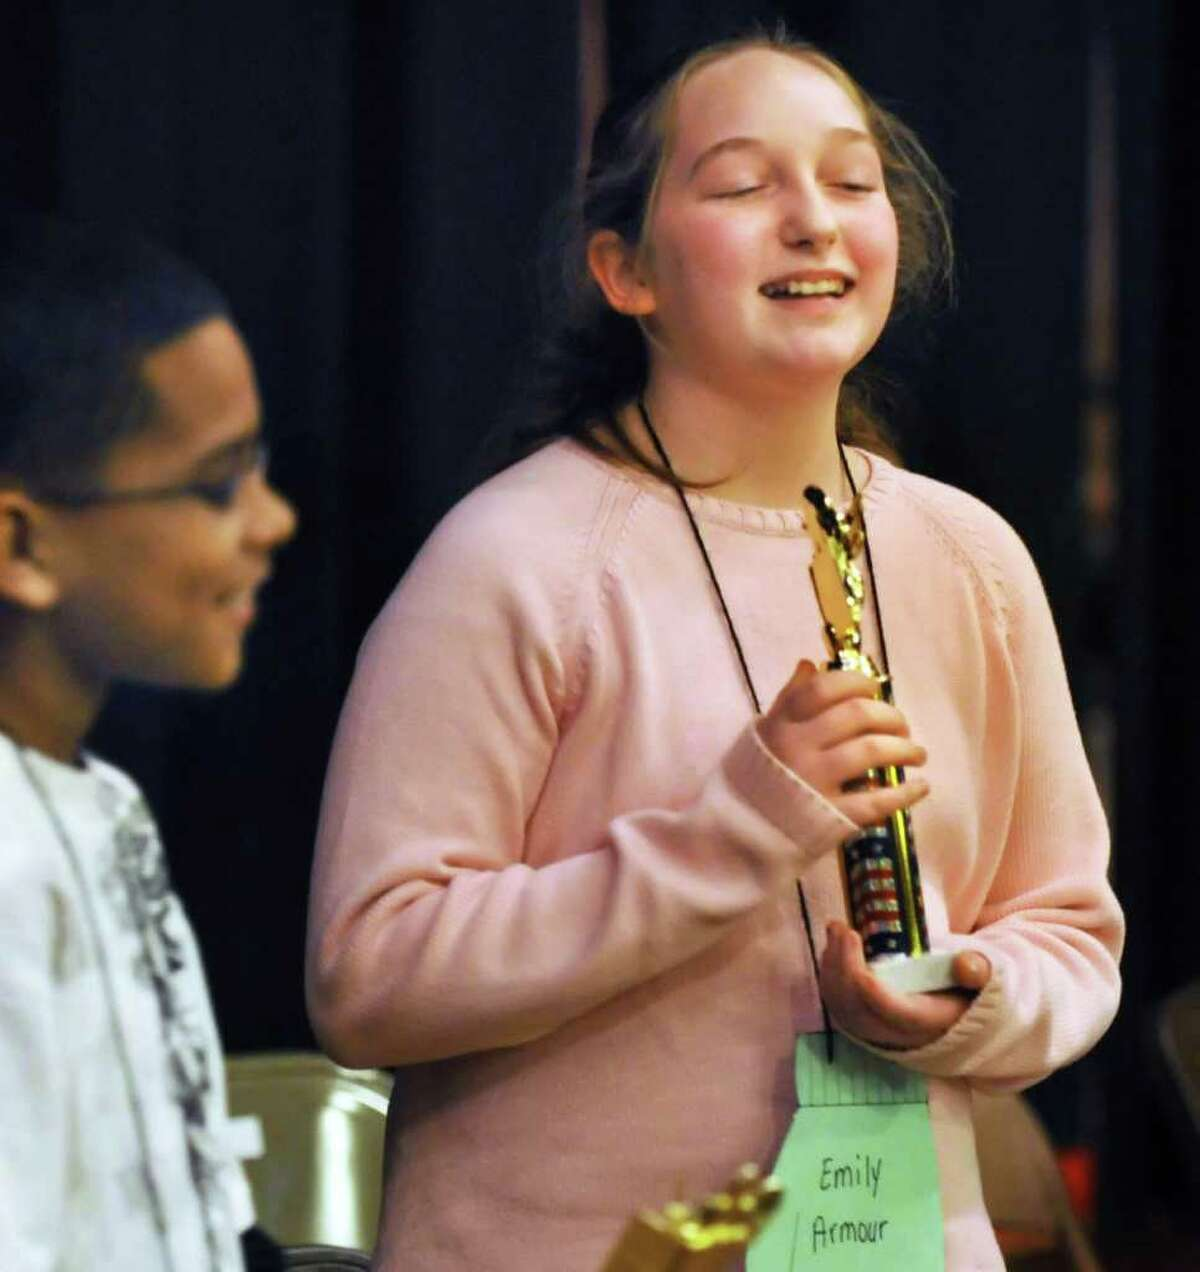 Spelling Bee winner Emily Armour of Van Corlaer Elementary School with her trophy in the Schenectady City School District Spelling Bee Tuesday afternoon January 4, 2010. (John Carl D'Annibale / Times Union)